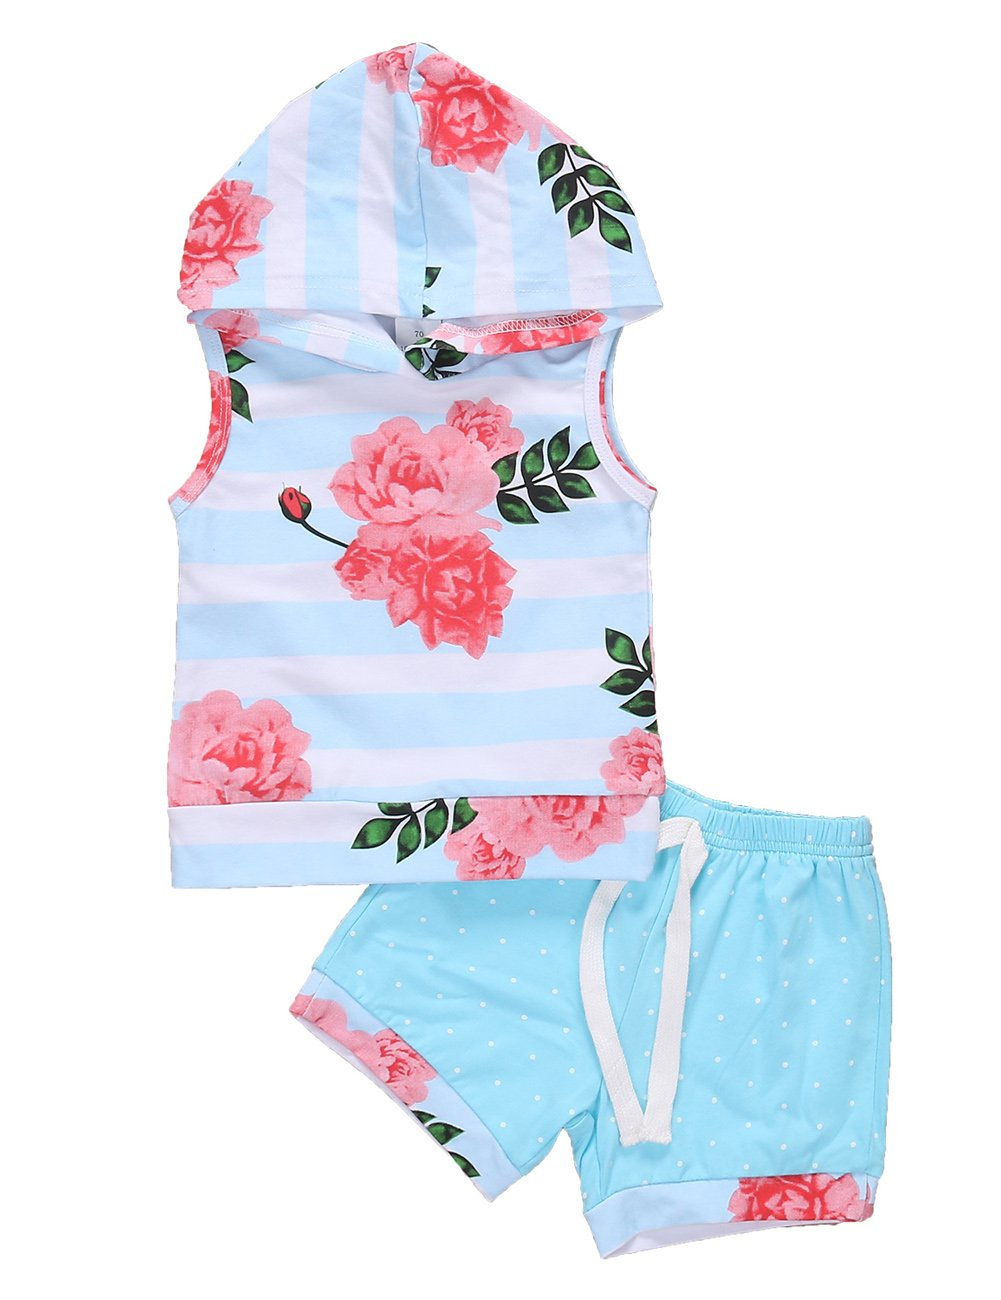 Pudcoco Toddler Baby Girls Sleeveless Flower Striped Hoodie Top and Elastic Shorts Outfit Set (12-18M, Blue)